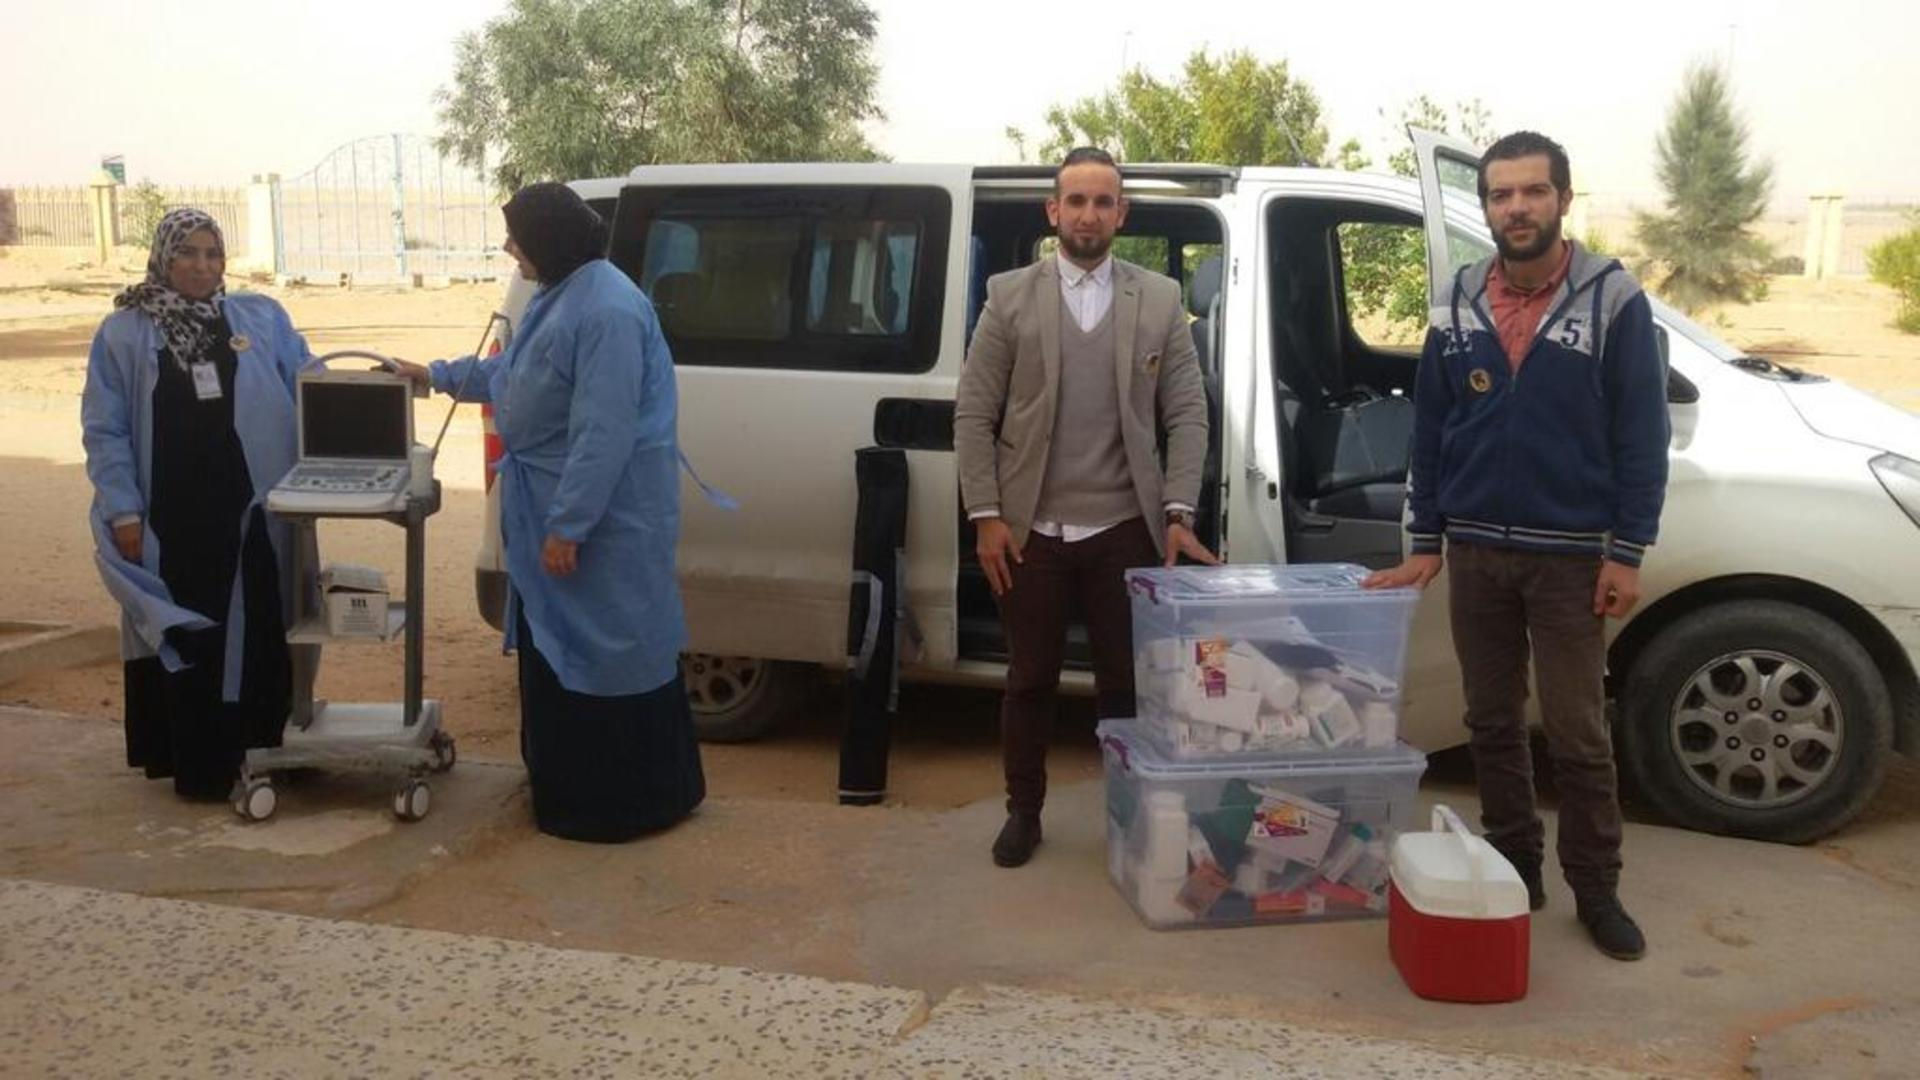 Mobile medical team and their minivan